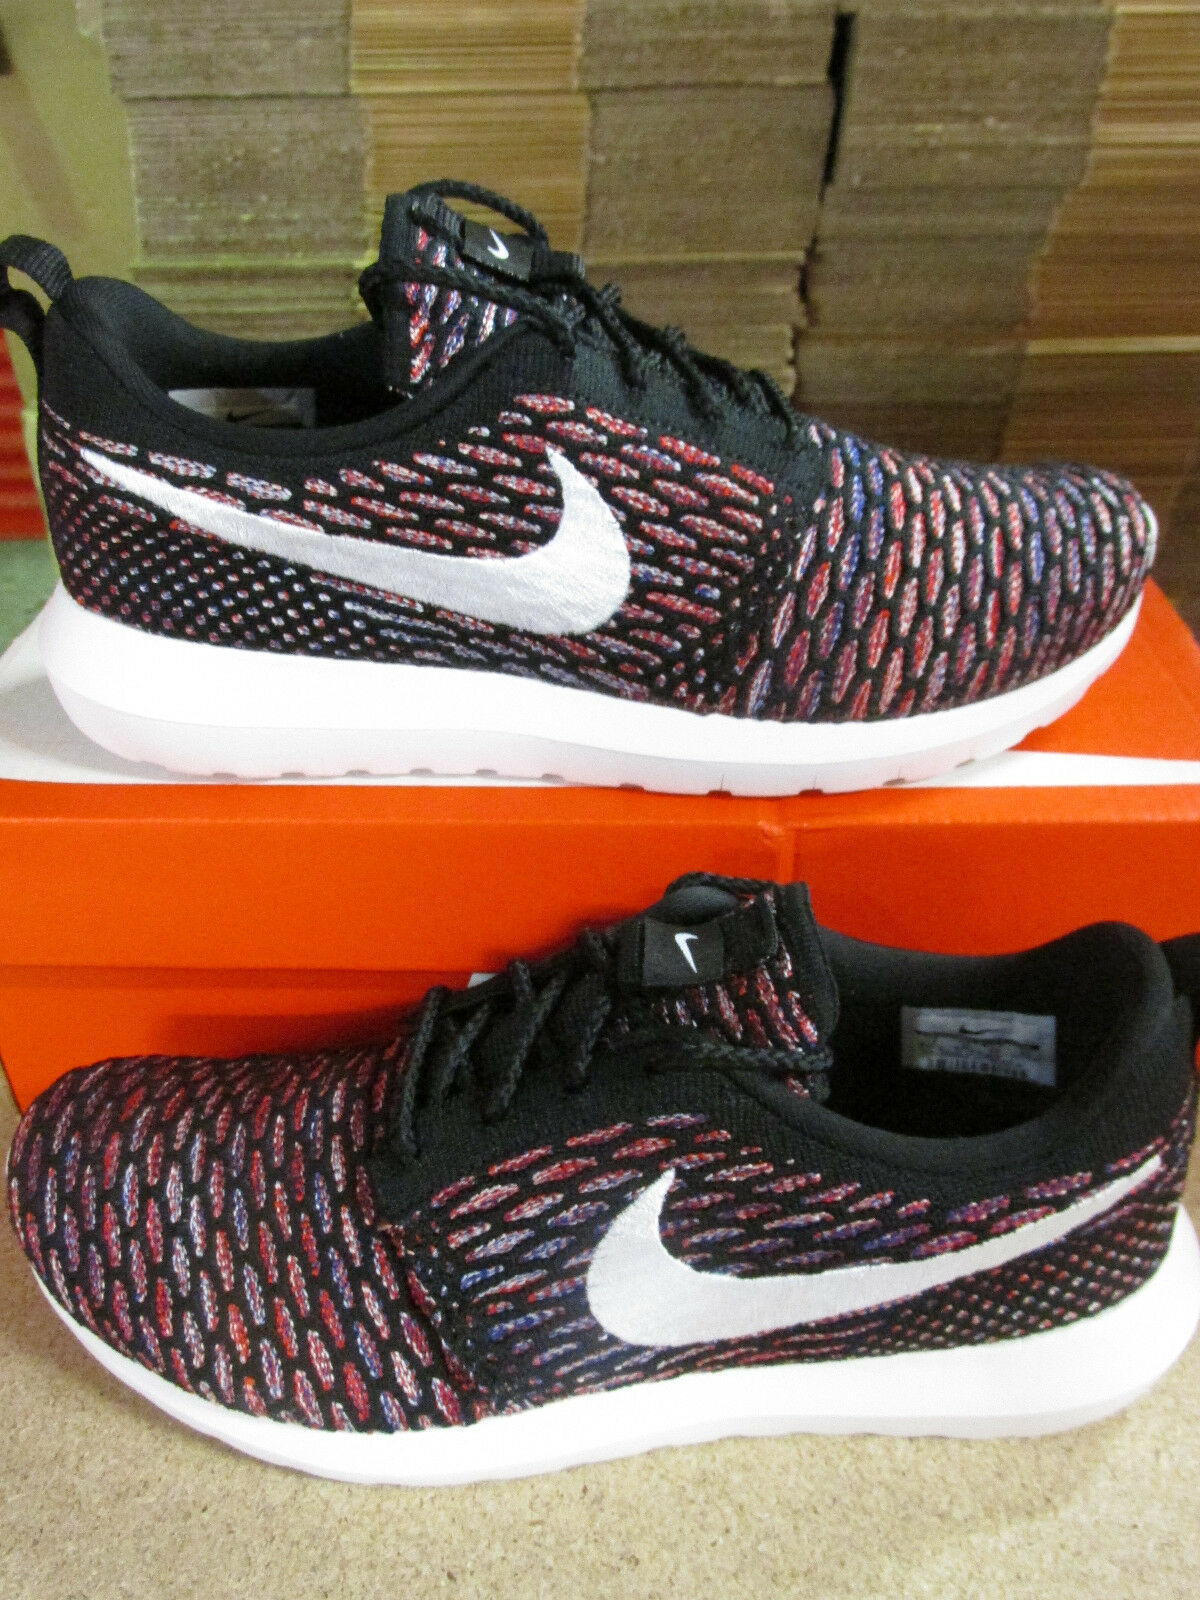 nike flyknit rosherun 016 mens running trainers 677243 016 rosherun sneakers shoes 06c743